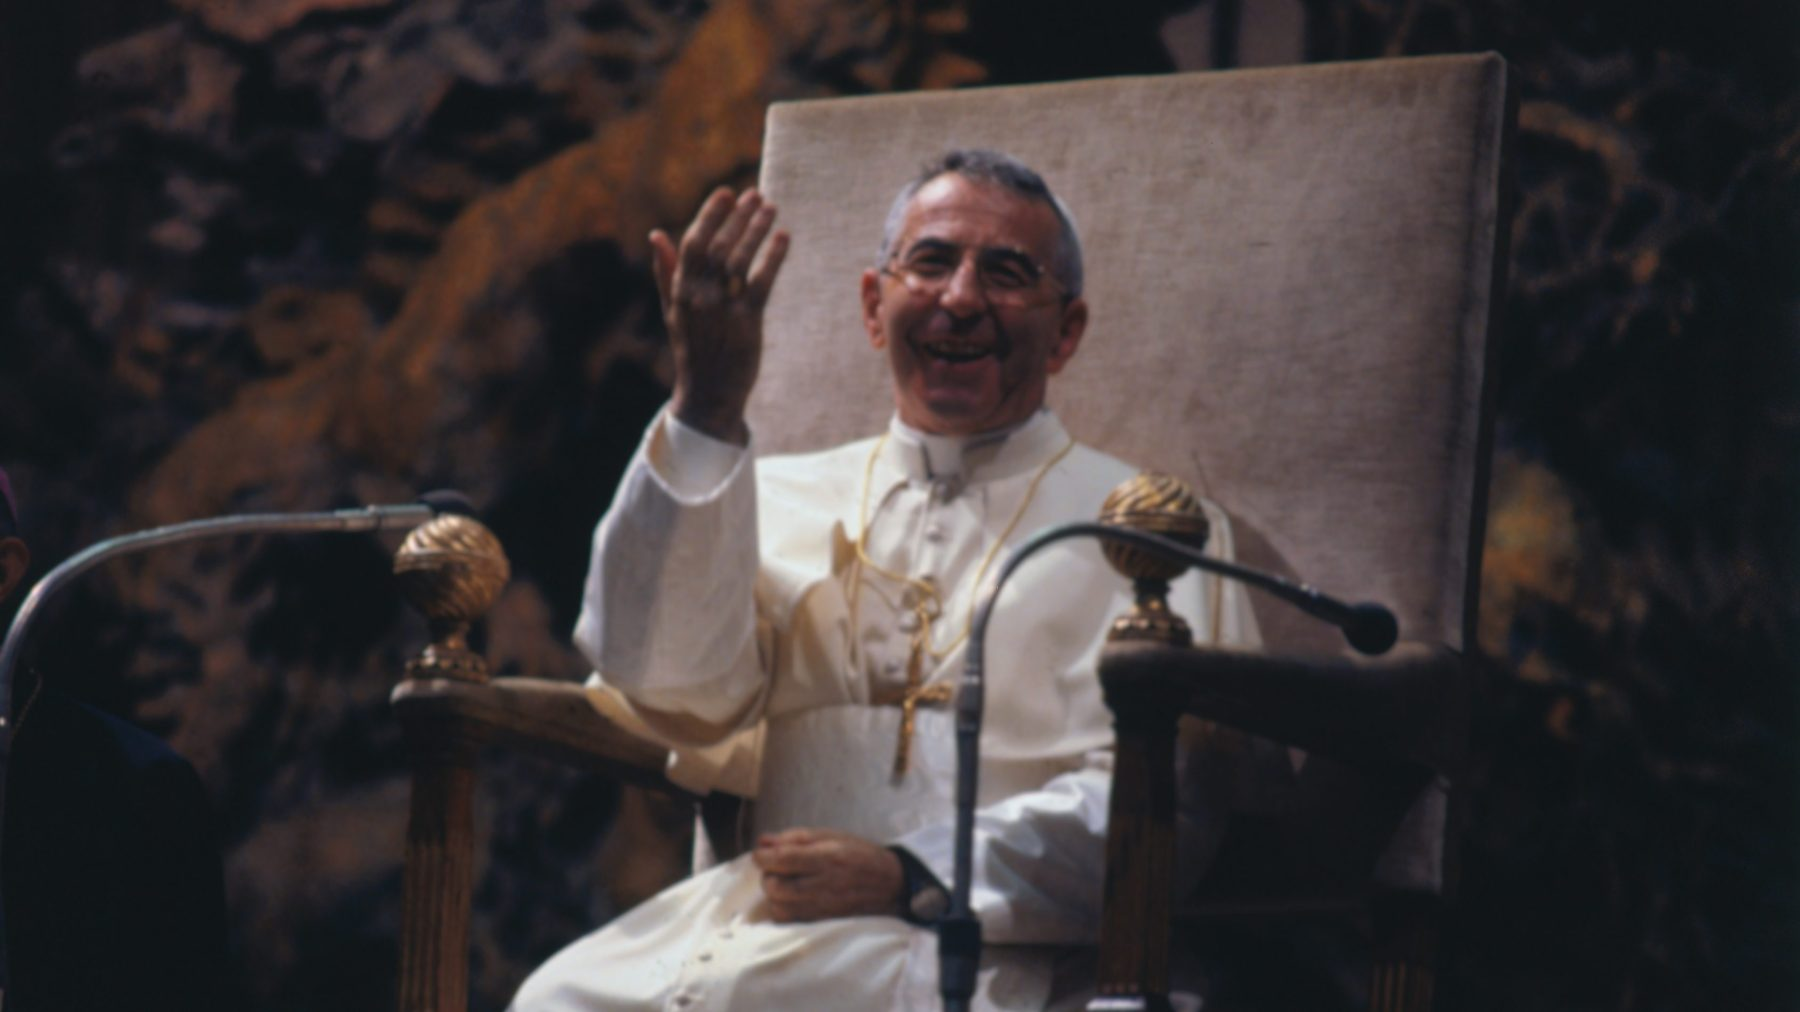 (Original Caption) Vatican City: Newly elected Pope John Paul I waves to crowd in St. Peter's Square, from the window of his private study in the Apostolic Palace after blessing faithful for the first time after his election as 263rd Pontiff. (Getty Images)